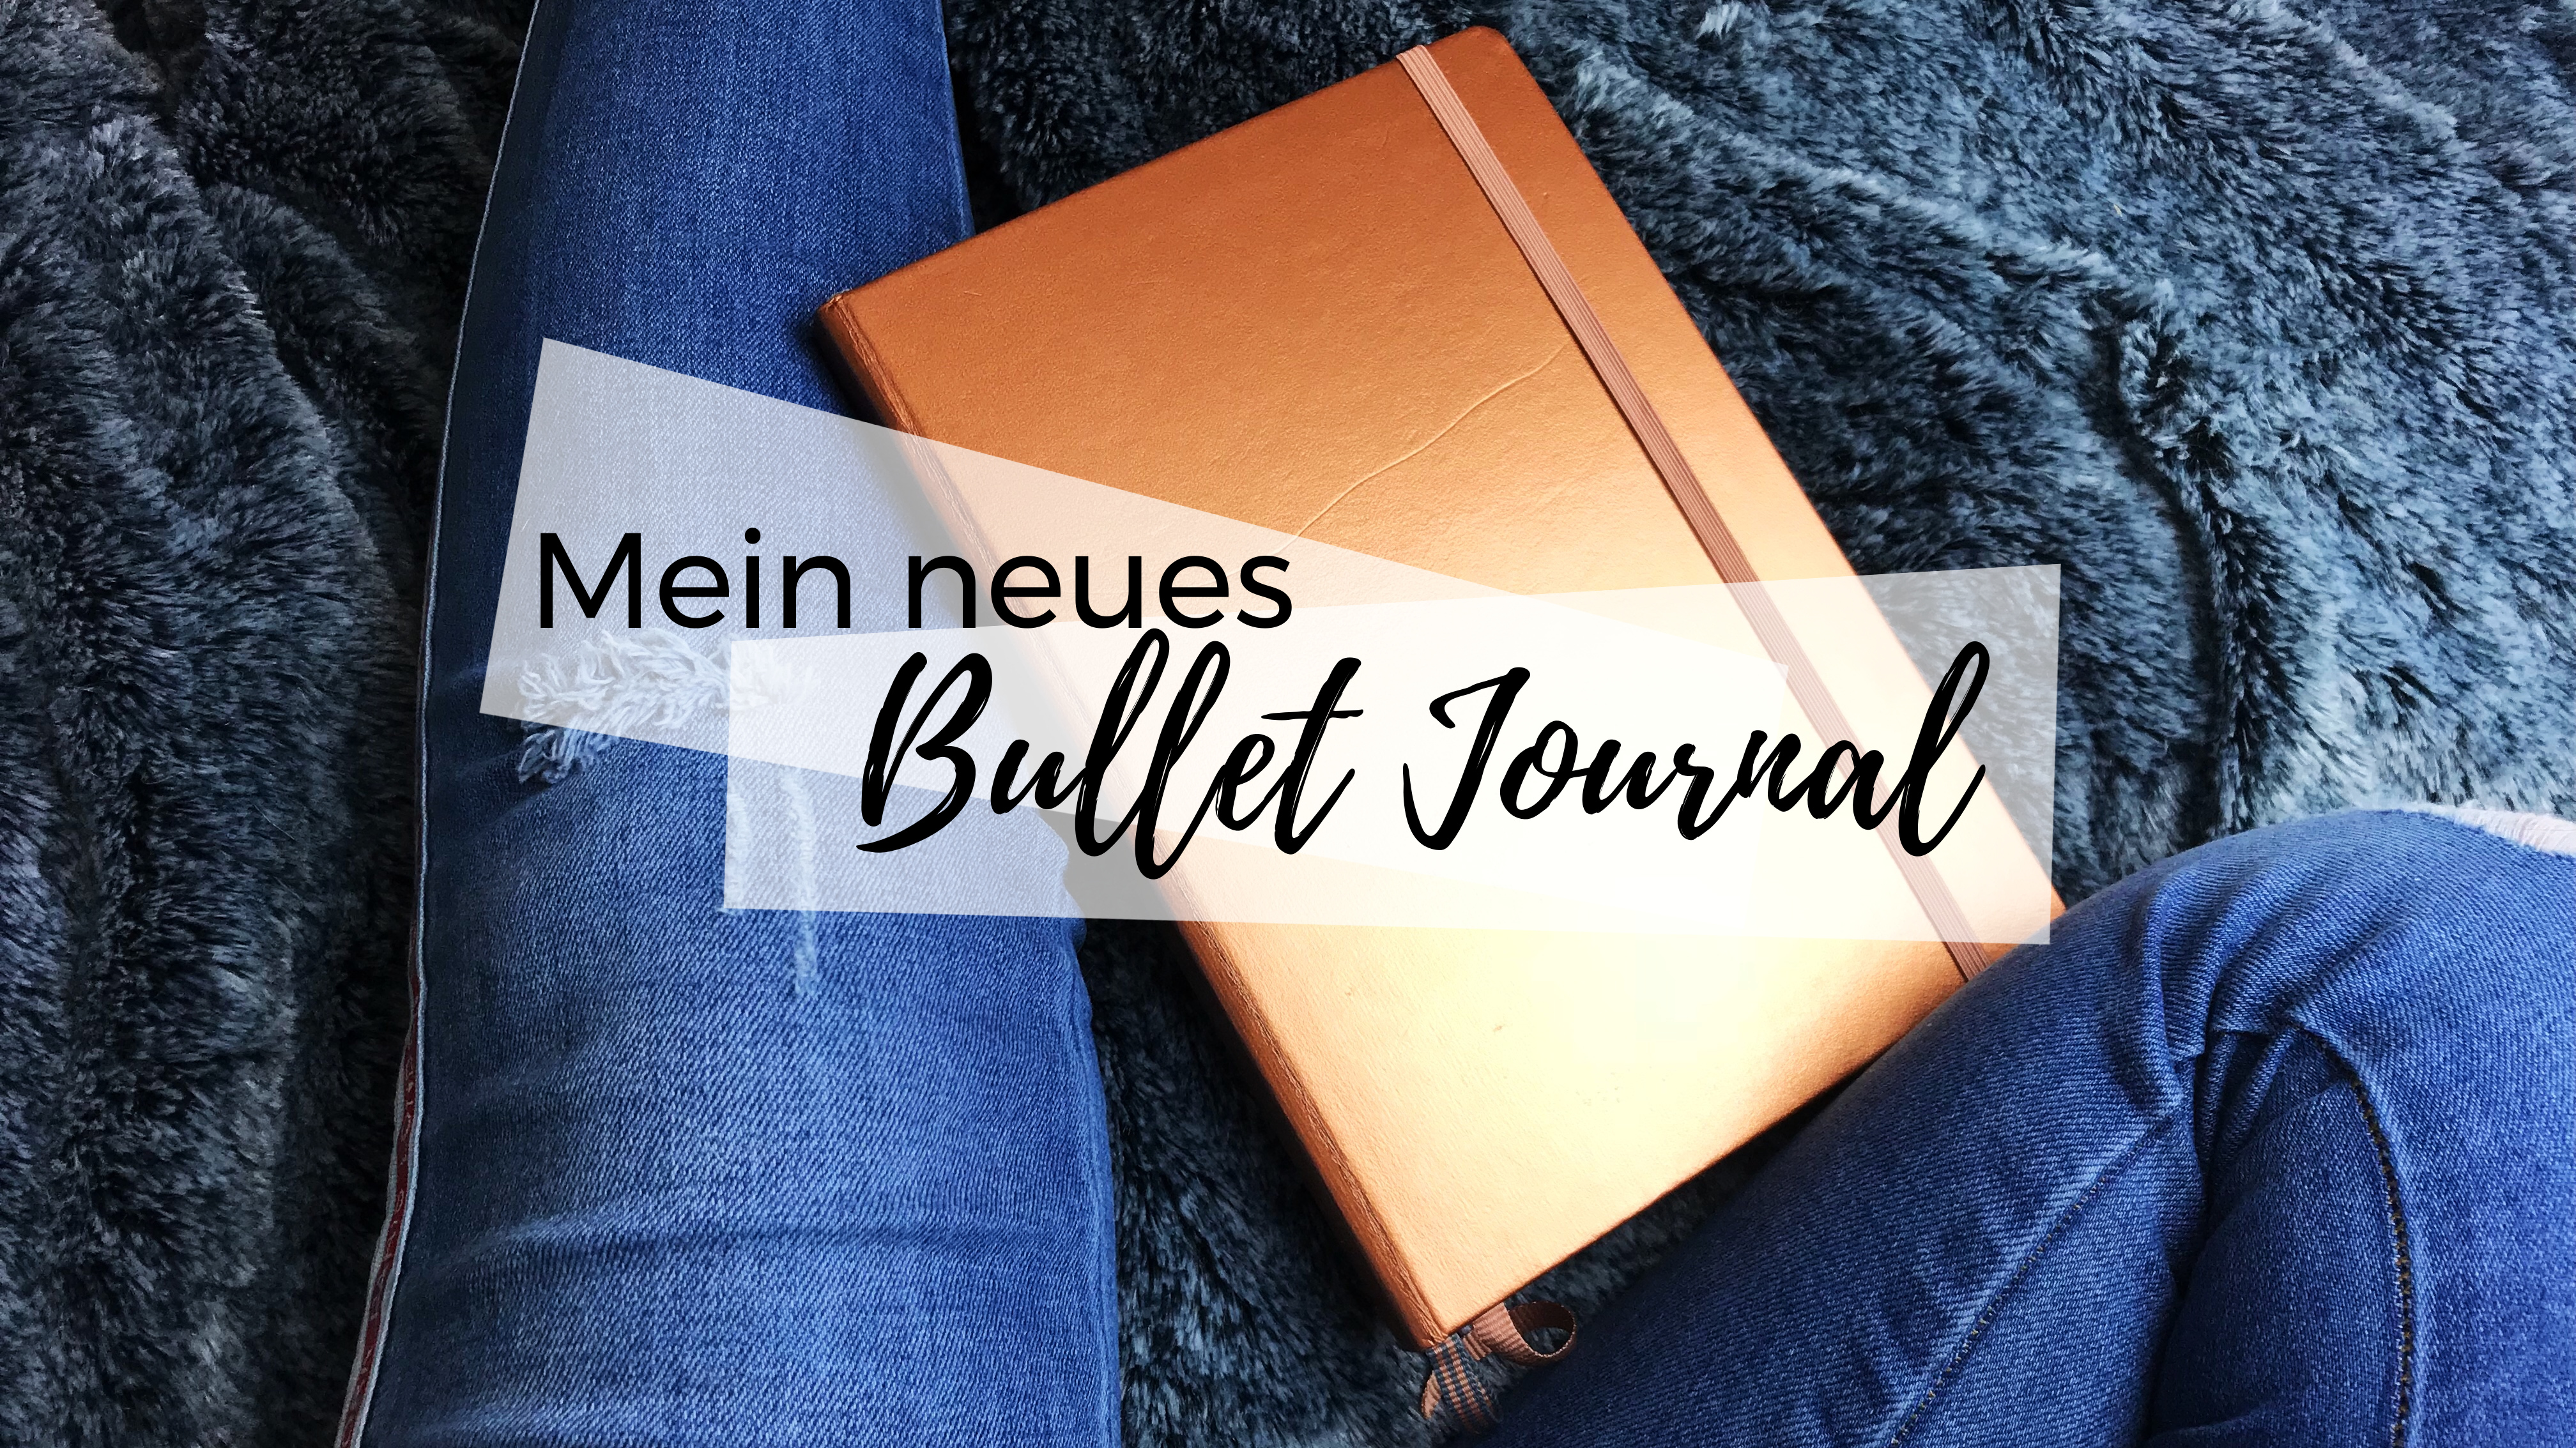 Mein Neues Bullet Journal Kateastrophy